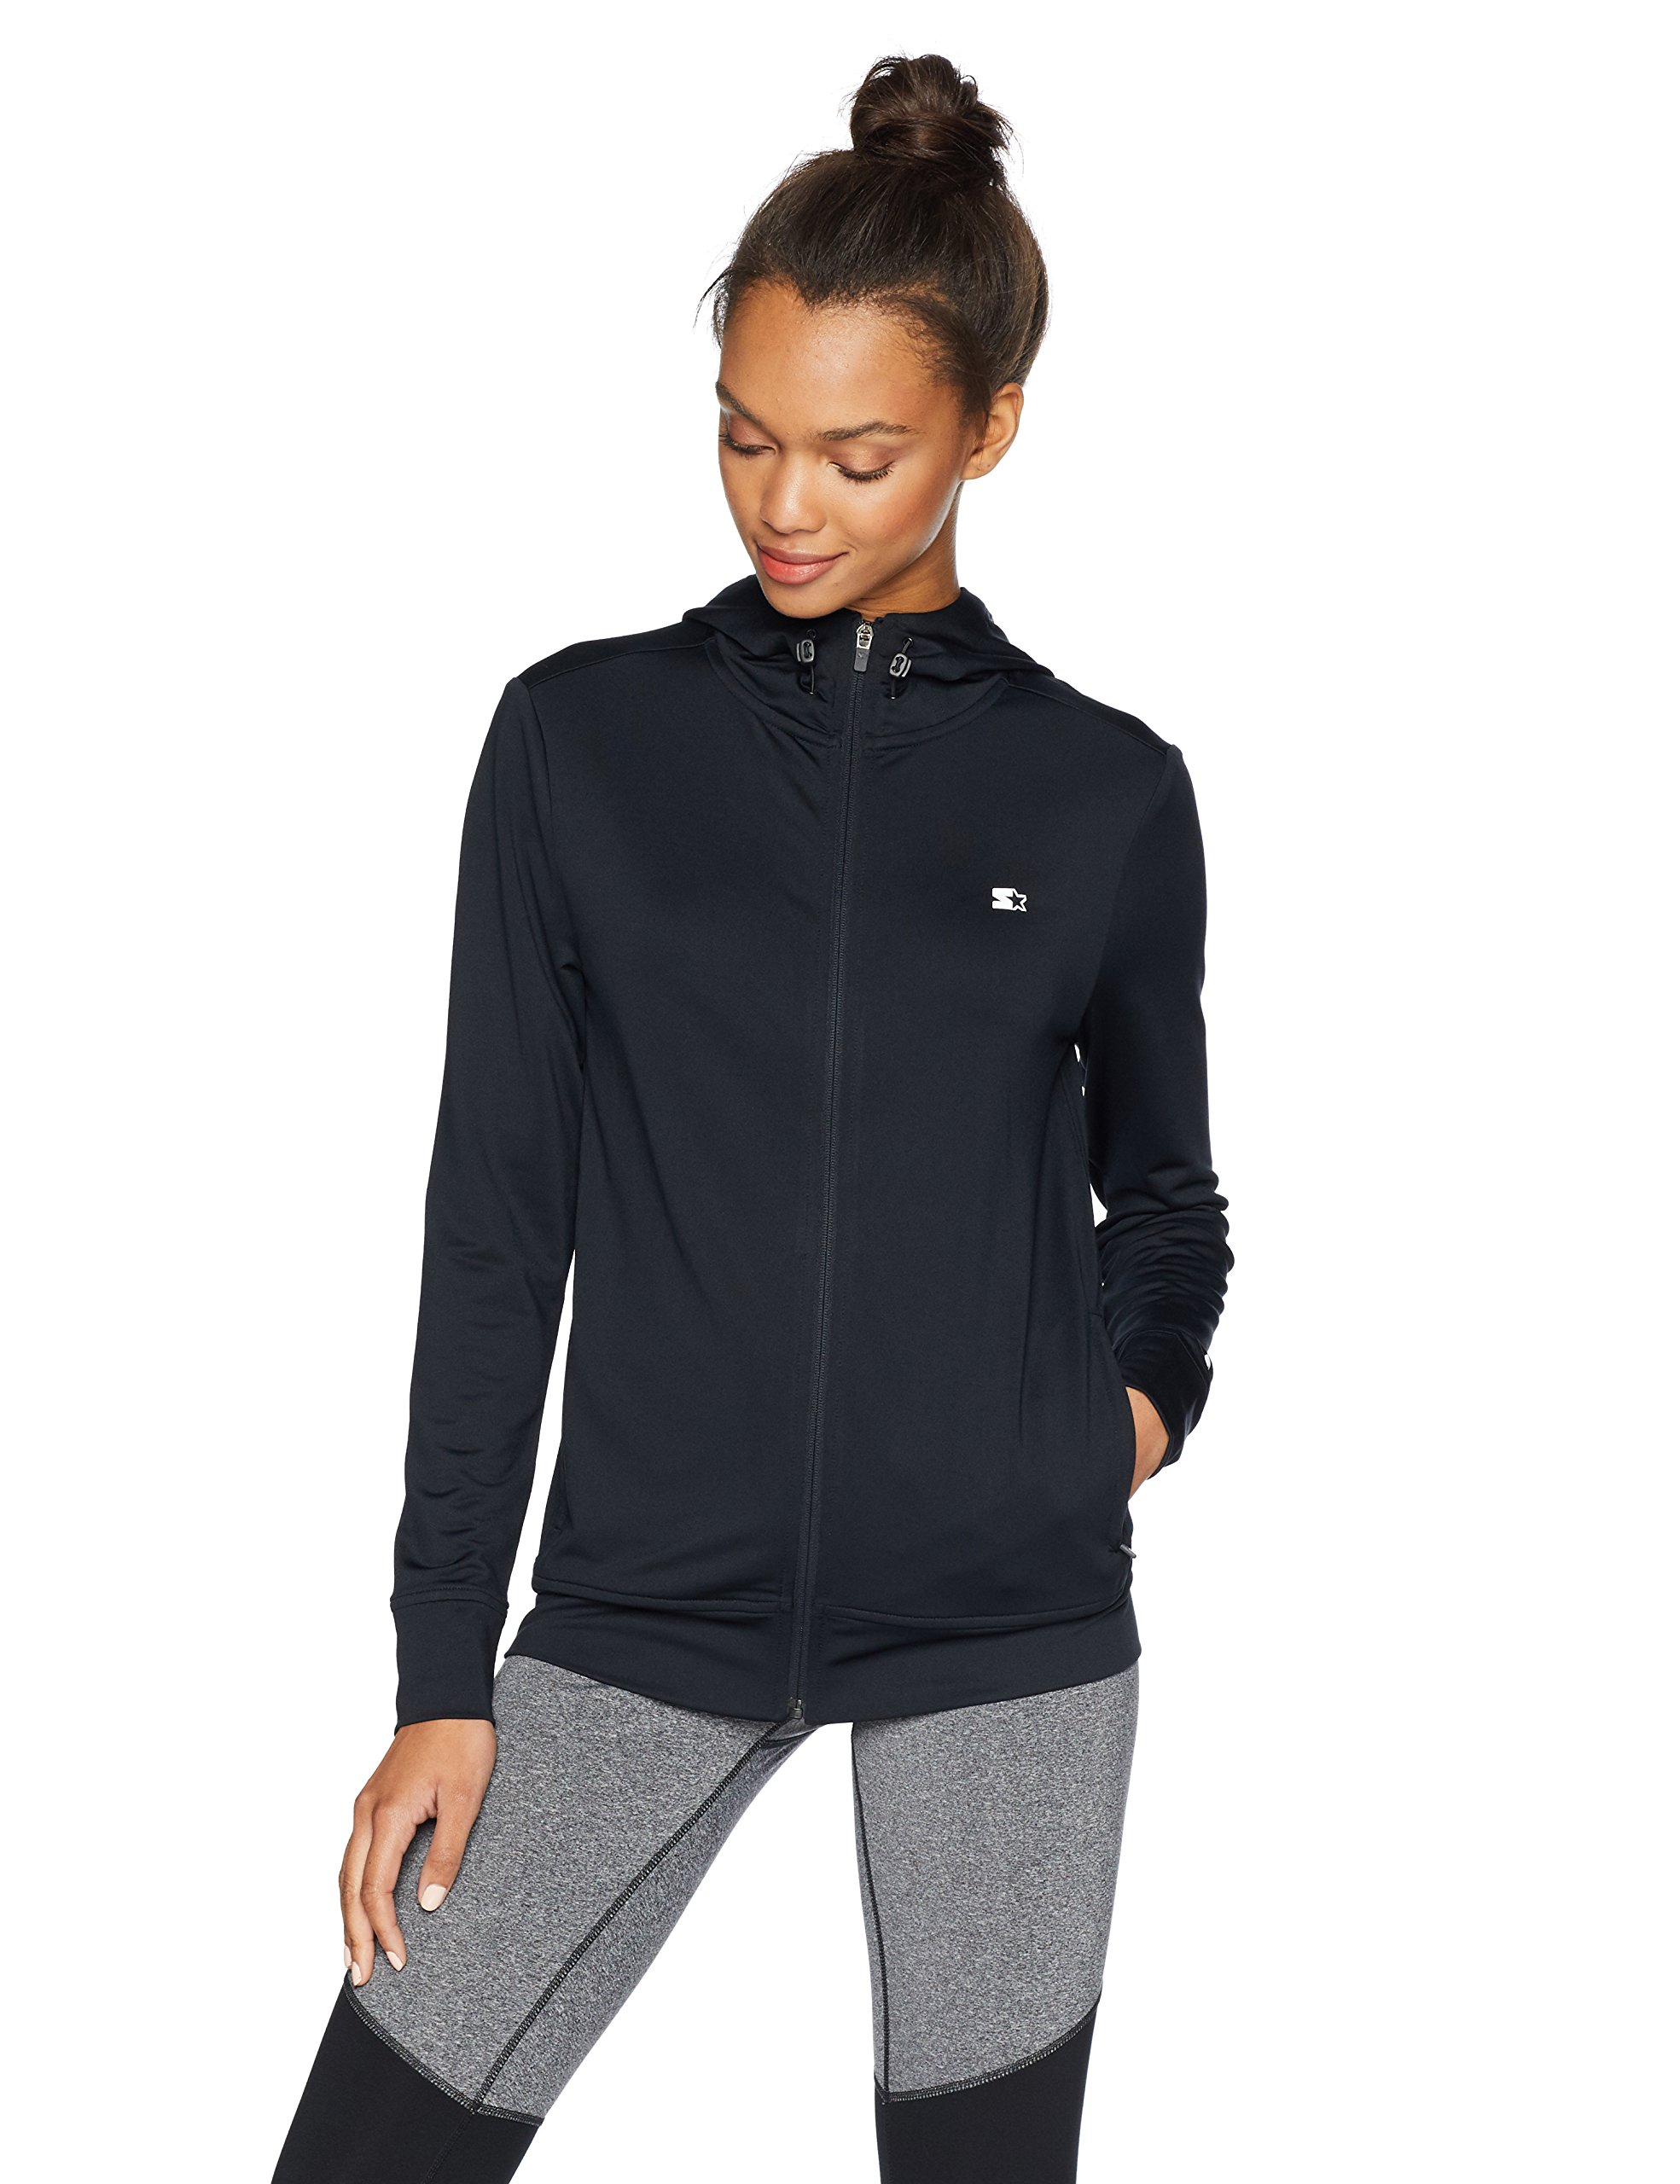 Starter Women's Lightweight Run Jacket with Hood, Prime Exclusive, Black, Extra Large